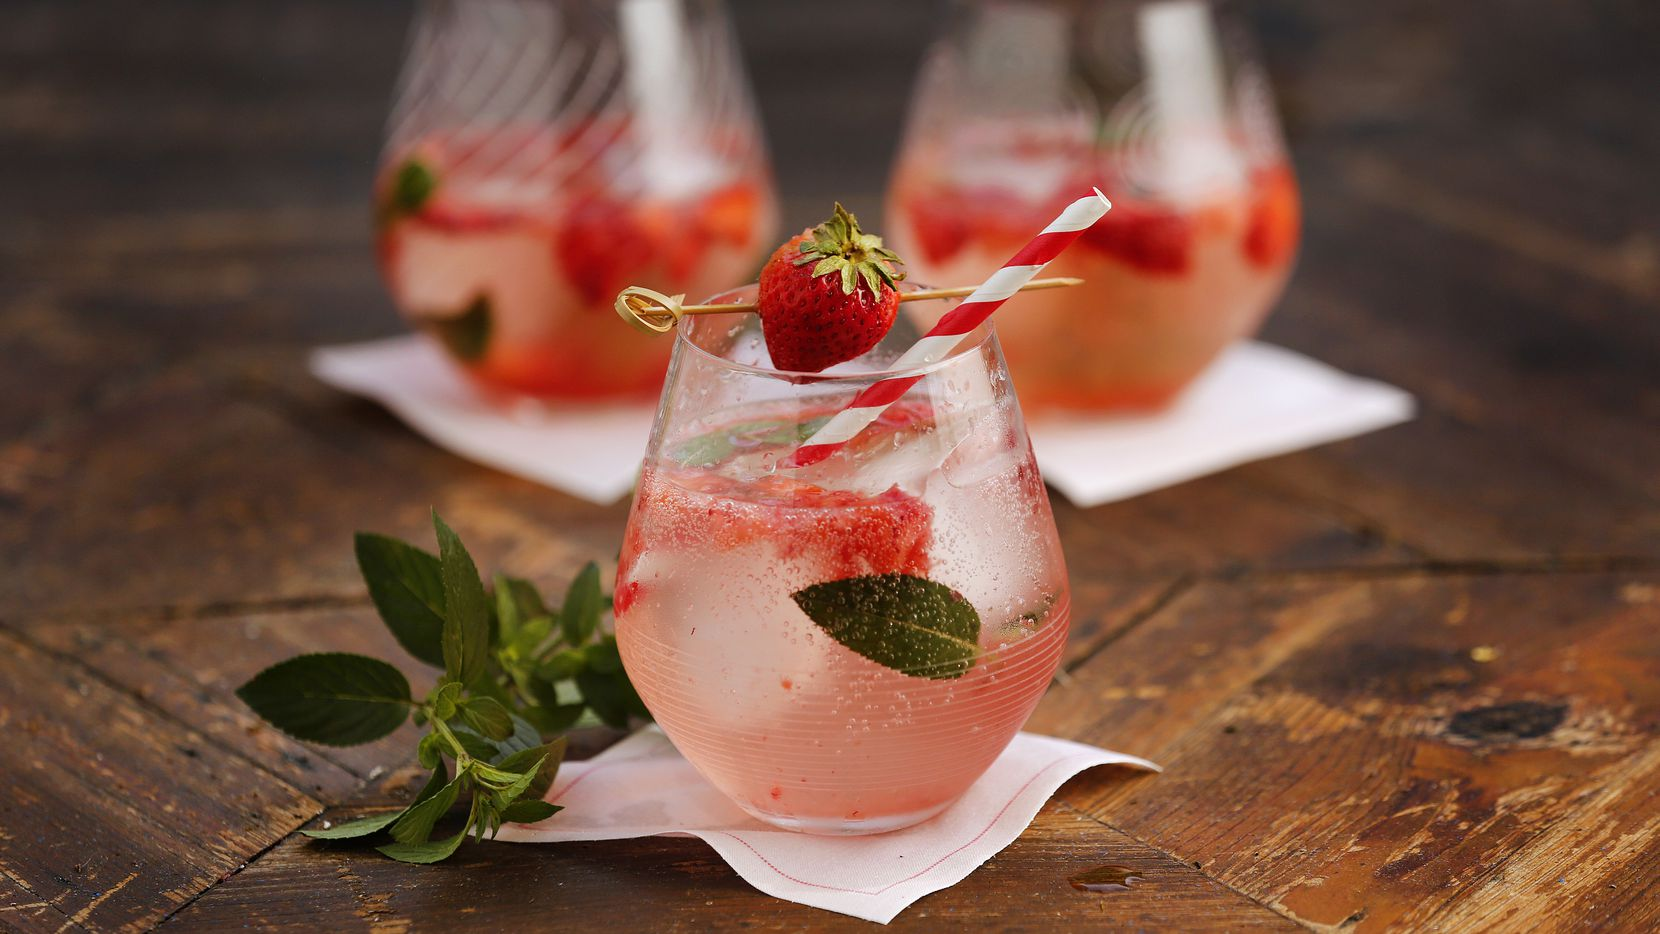 Strawberry mint freeze drinks made with Topo Chico